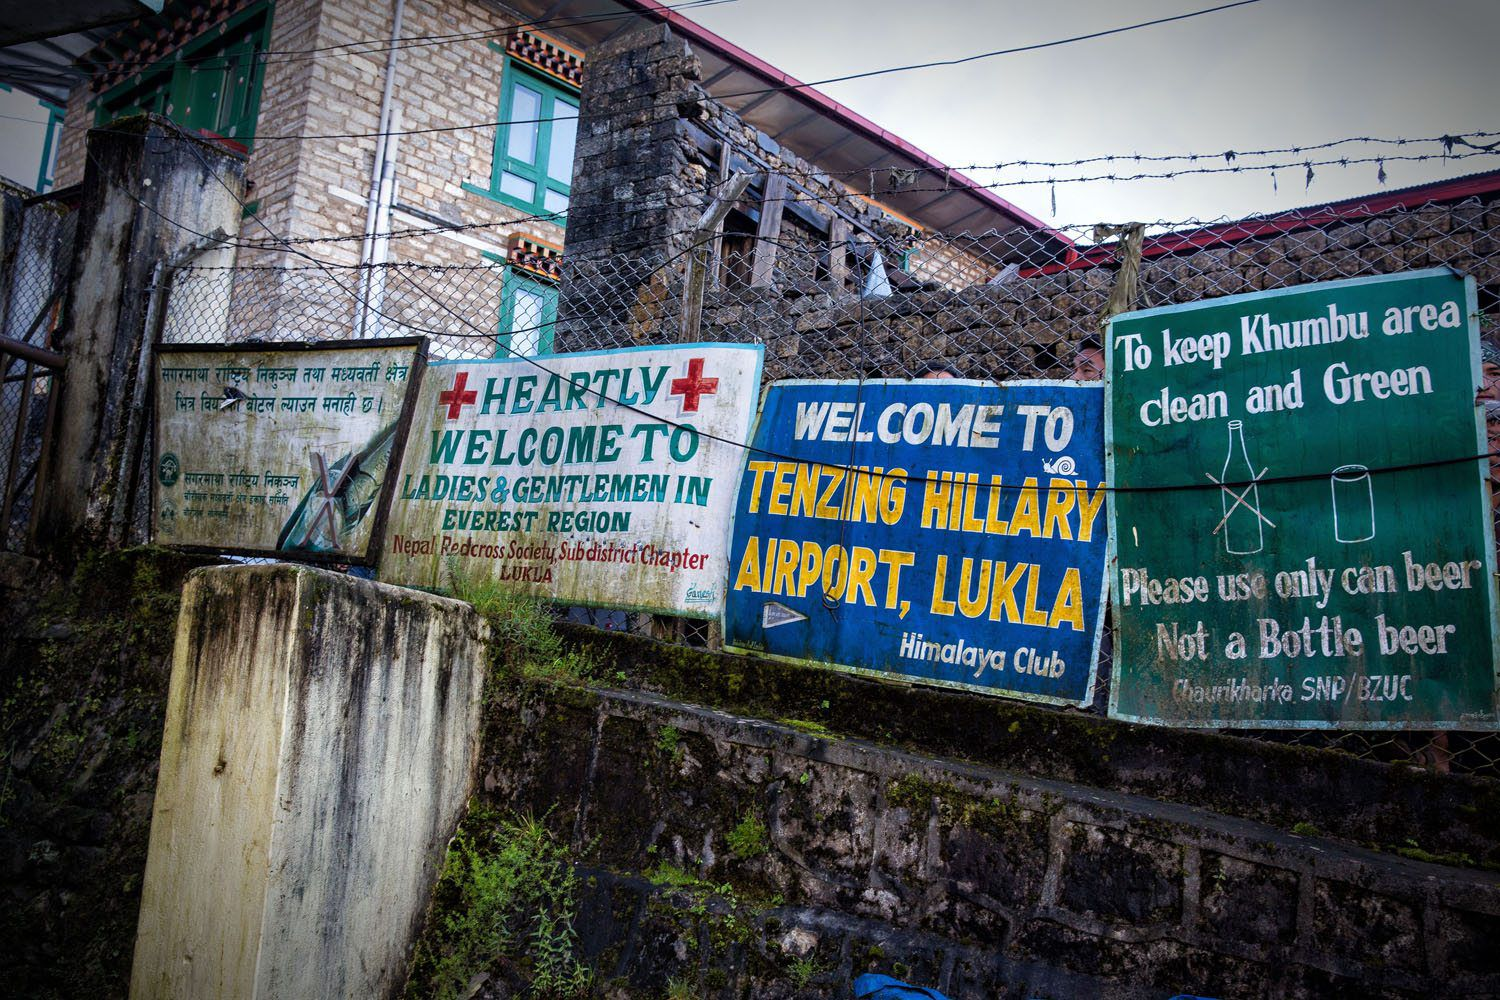 Lukla Airport Signs | Earth Trekkers